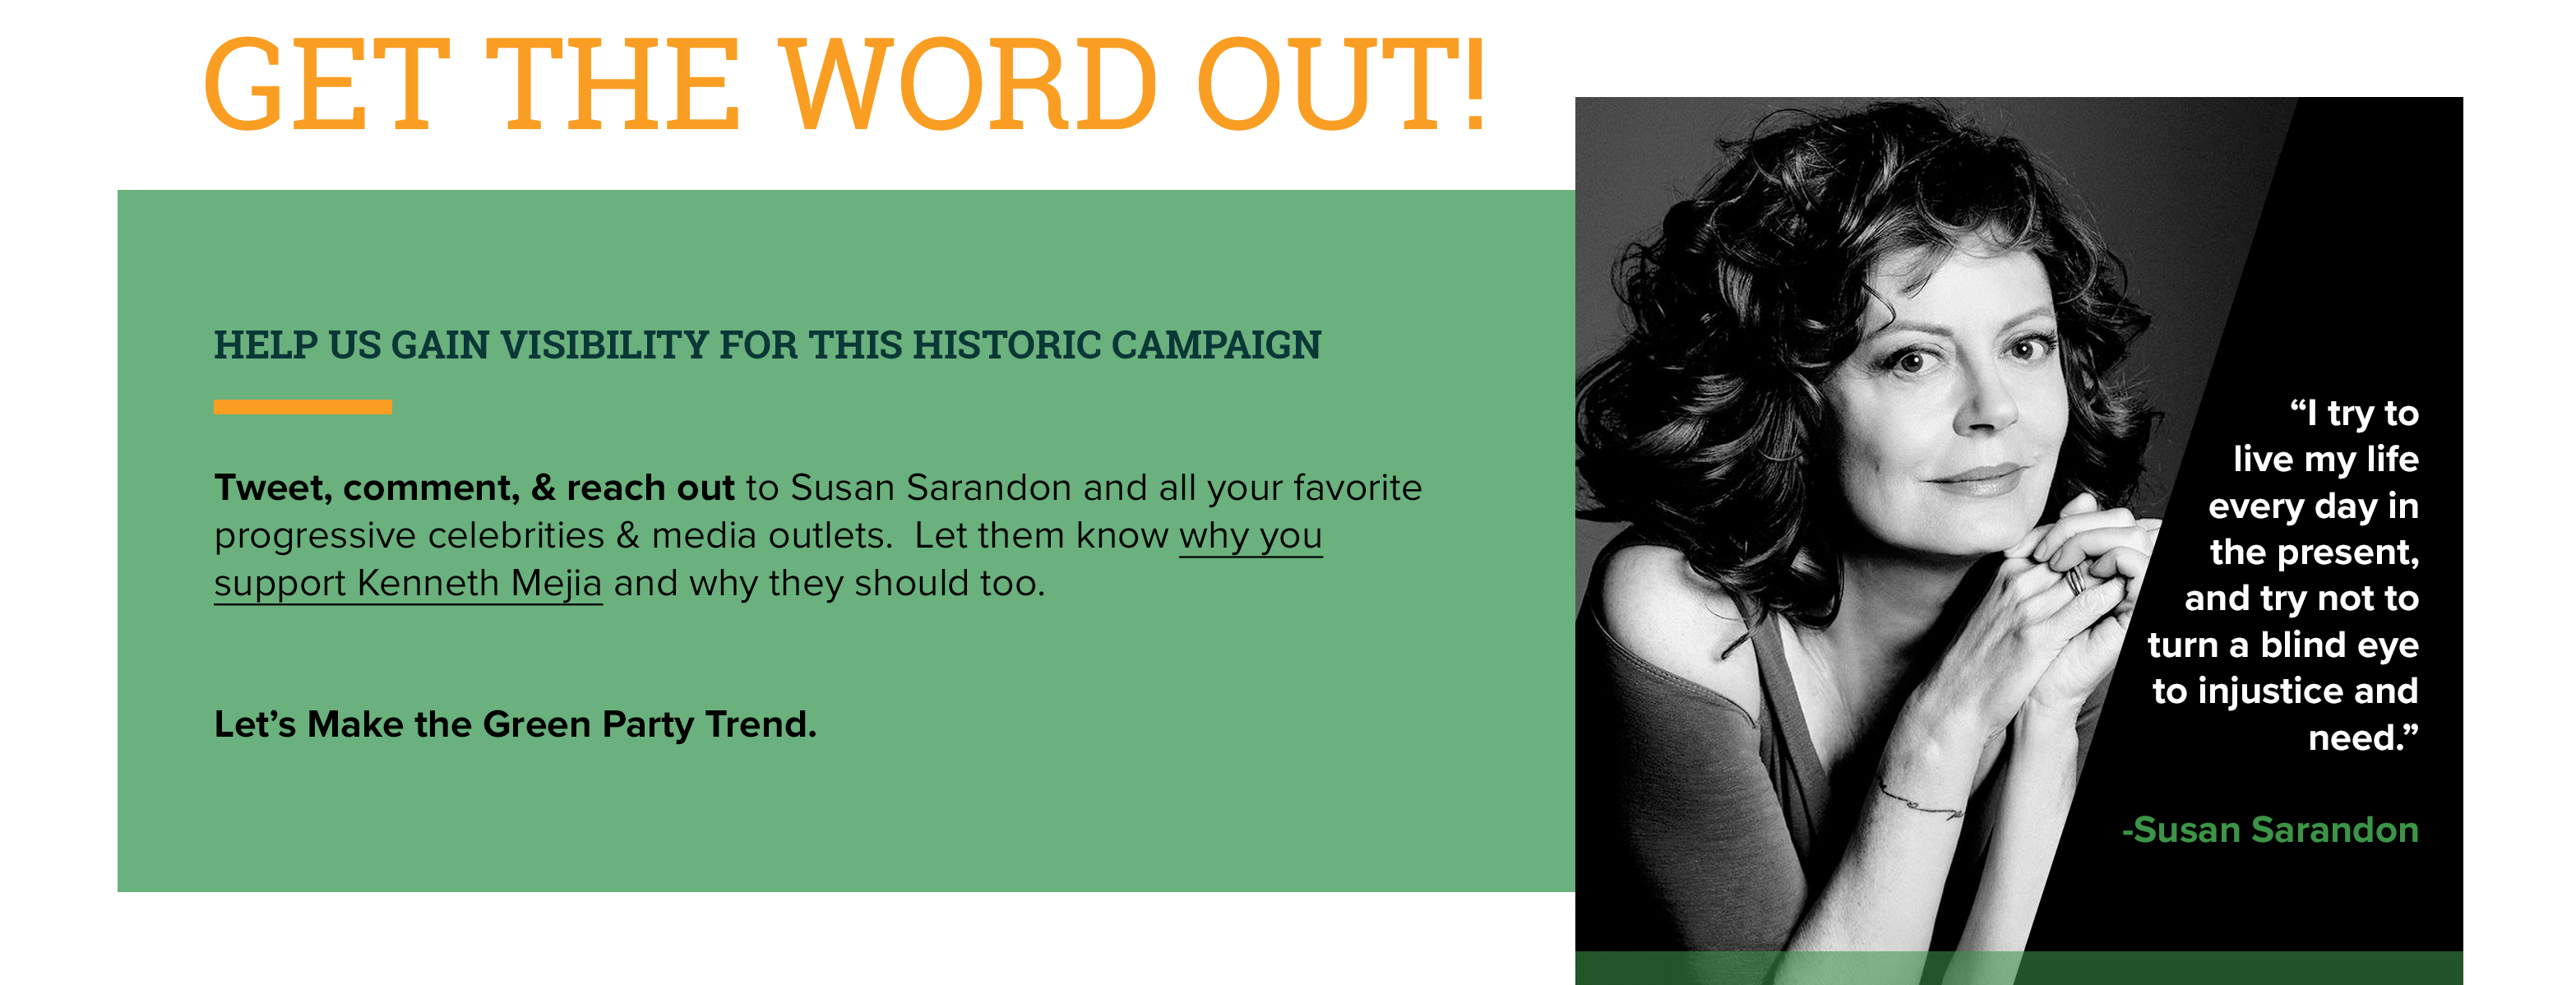 Susan Sarandon Progressive Celebrity